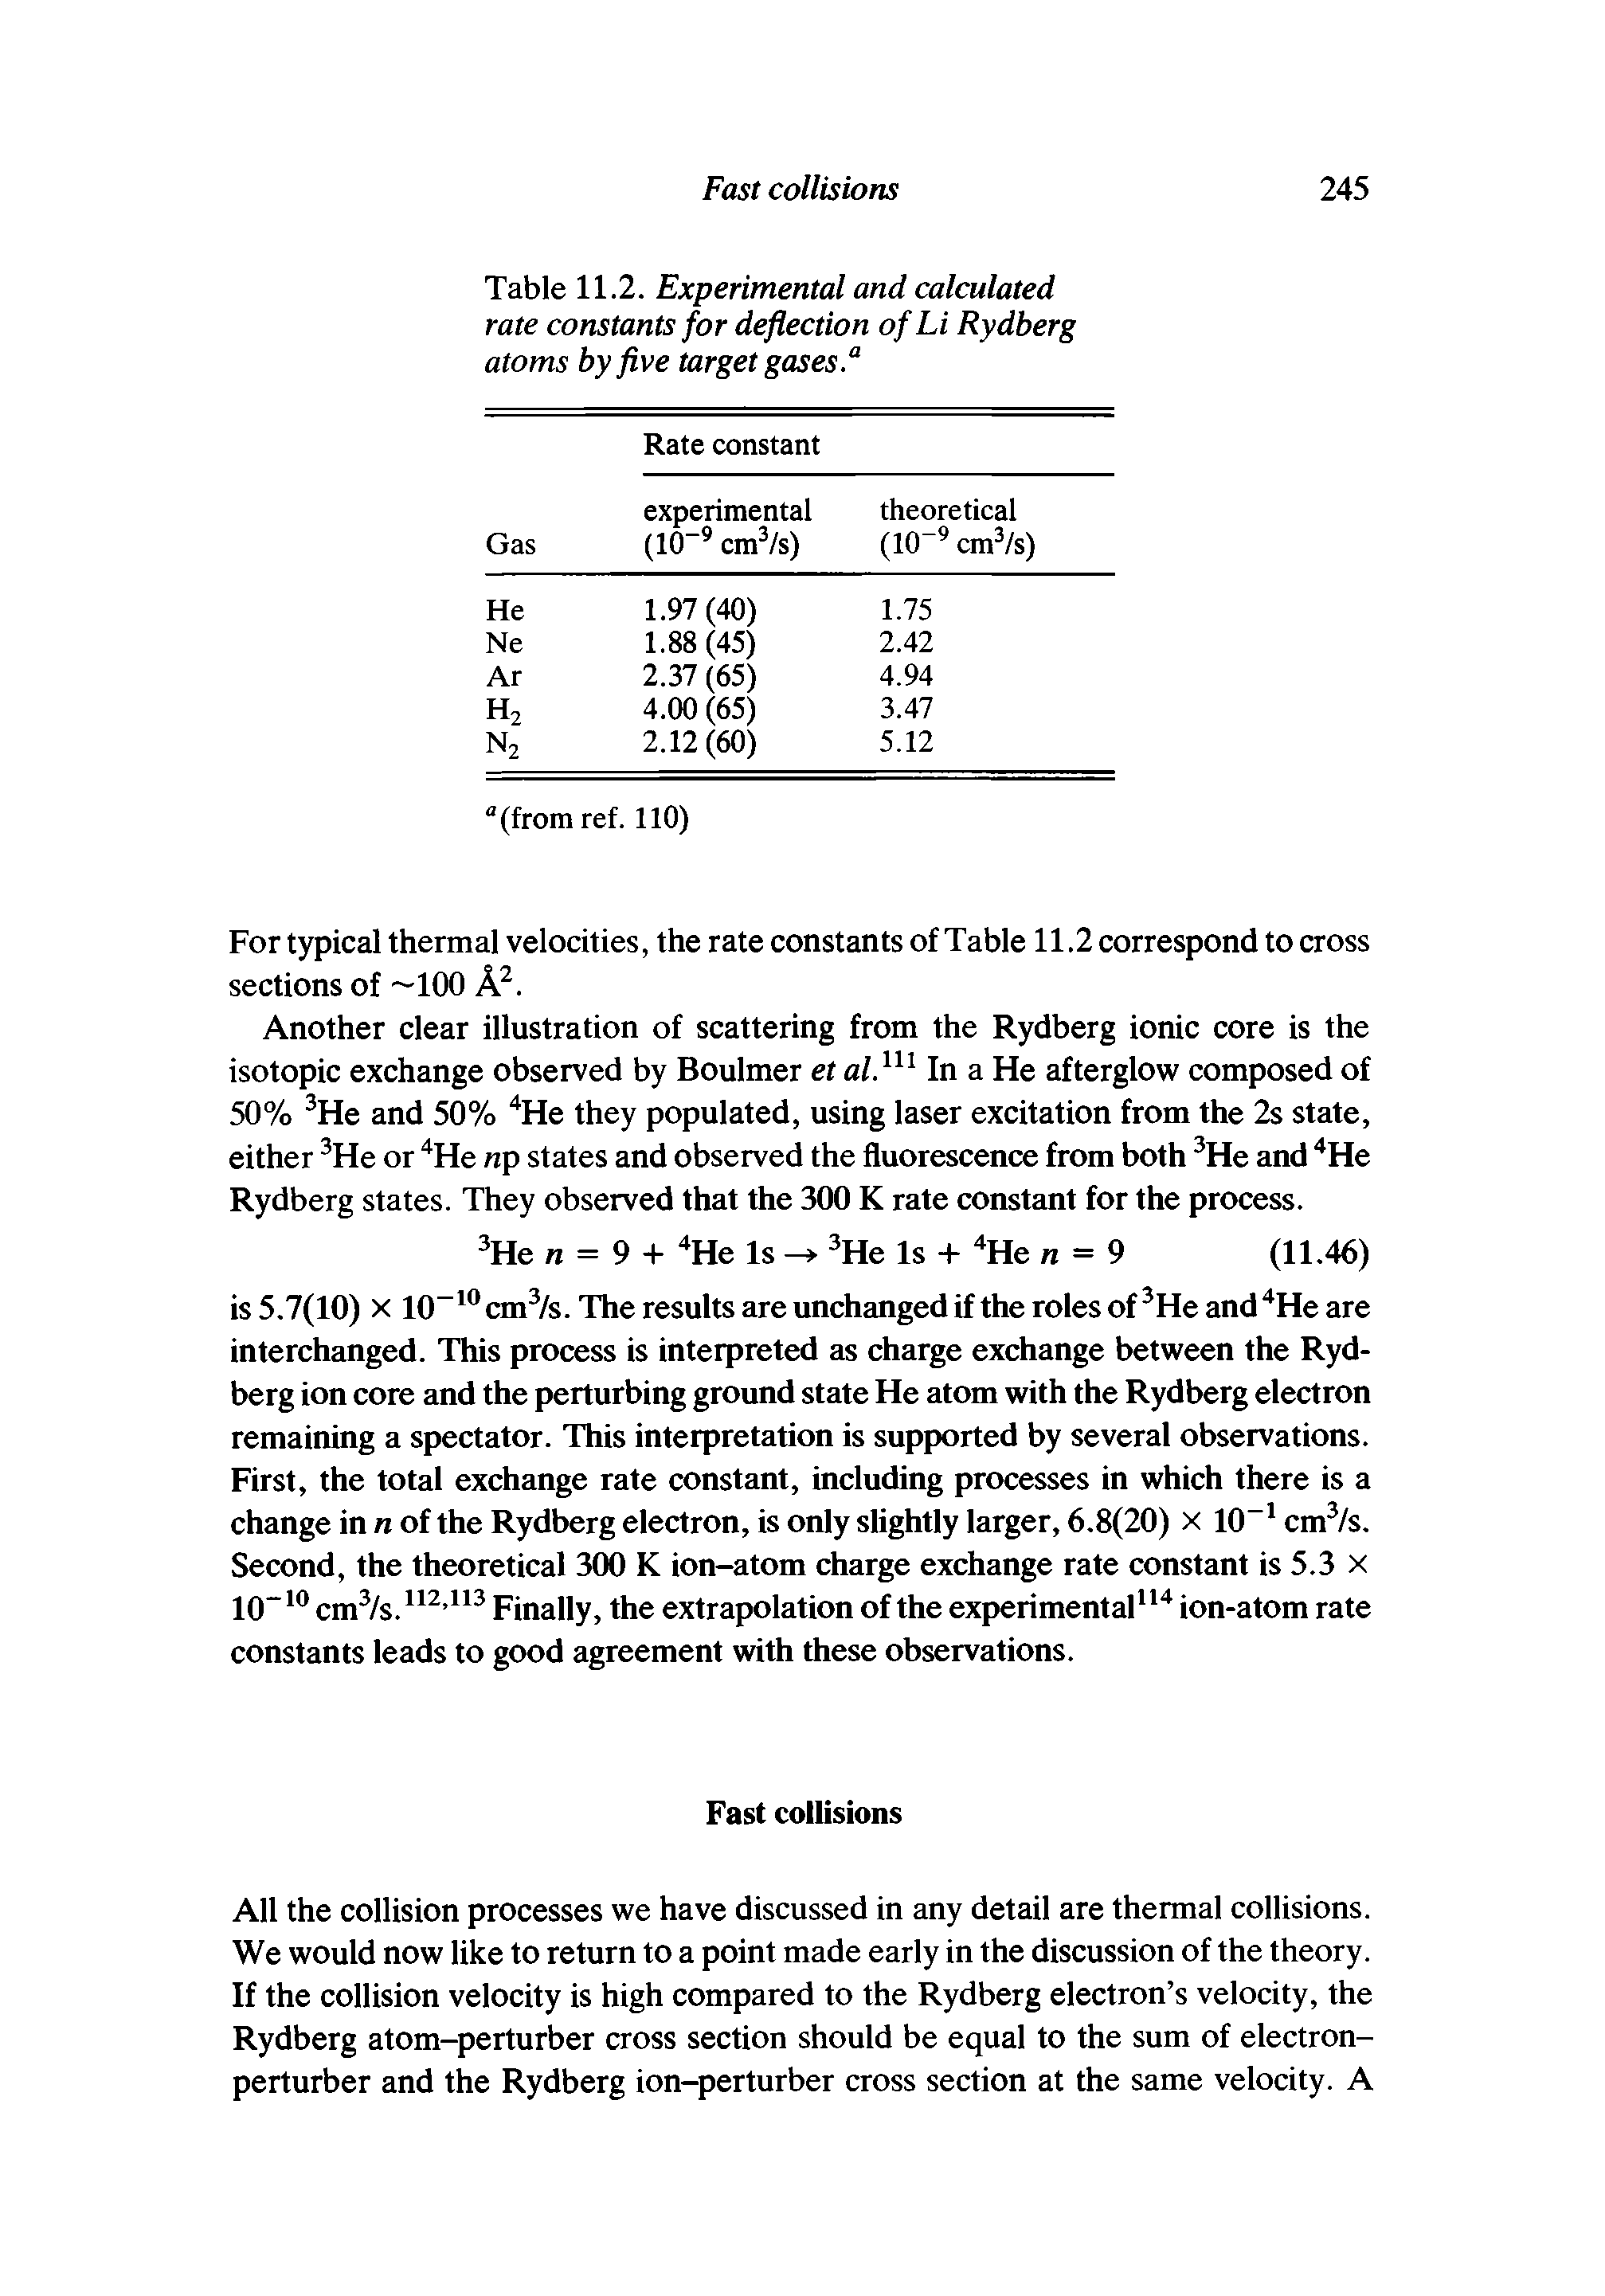 "Table 11.2. Experimental and <a href=""/info/rate_constant_calculations"">calculated rate constants</a> for deflection of Li <a href=""/info/atom_rydberg"">Rydberg atoms</a> by five target gases.a"